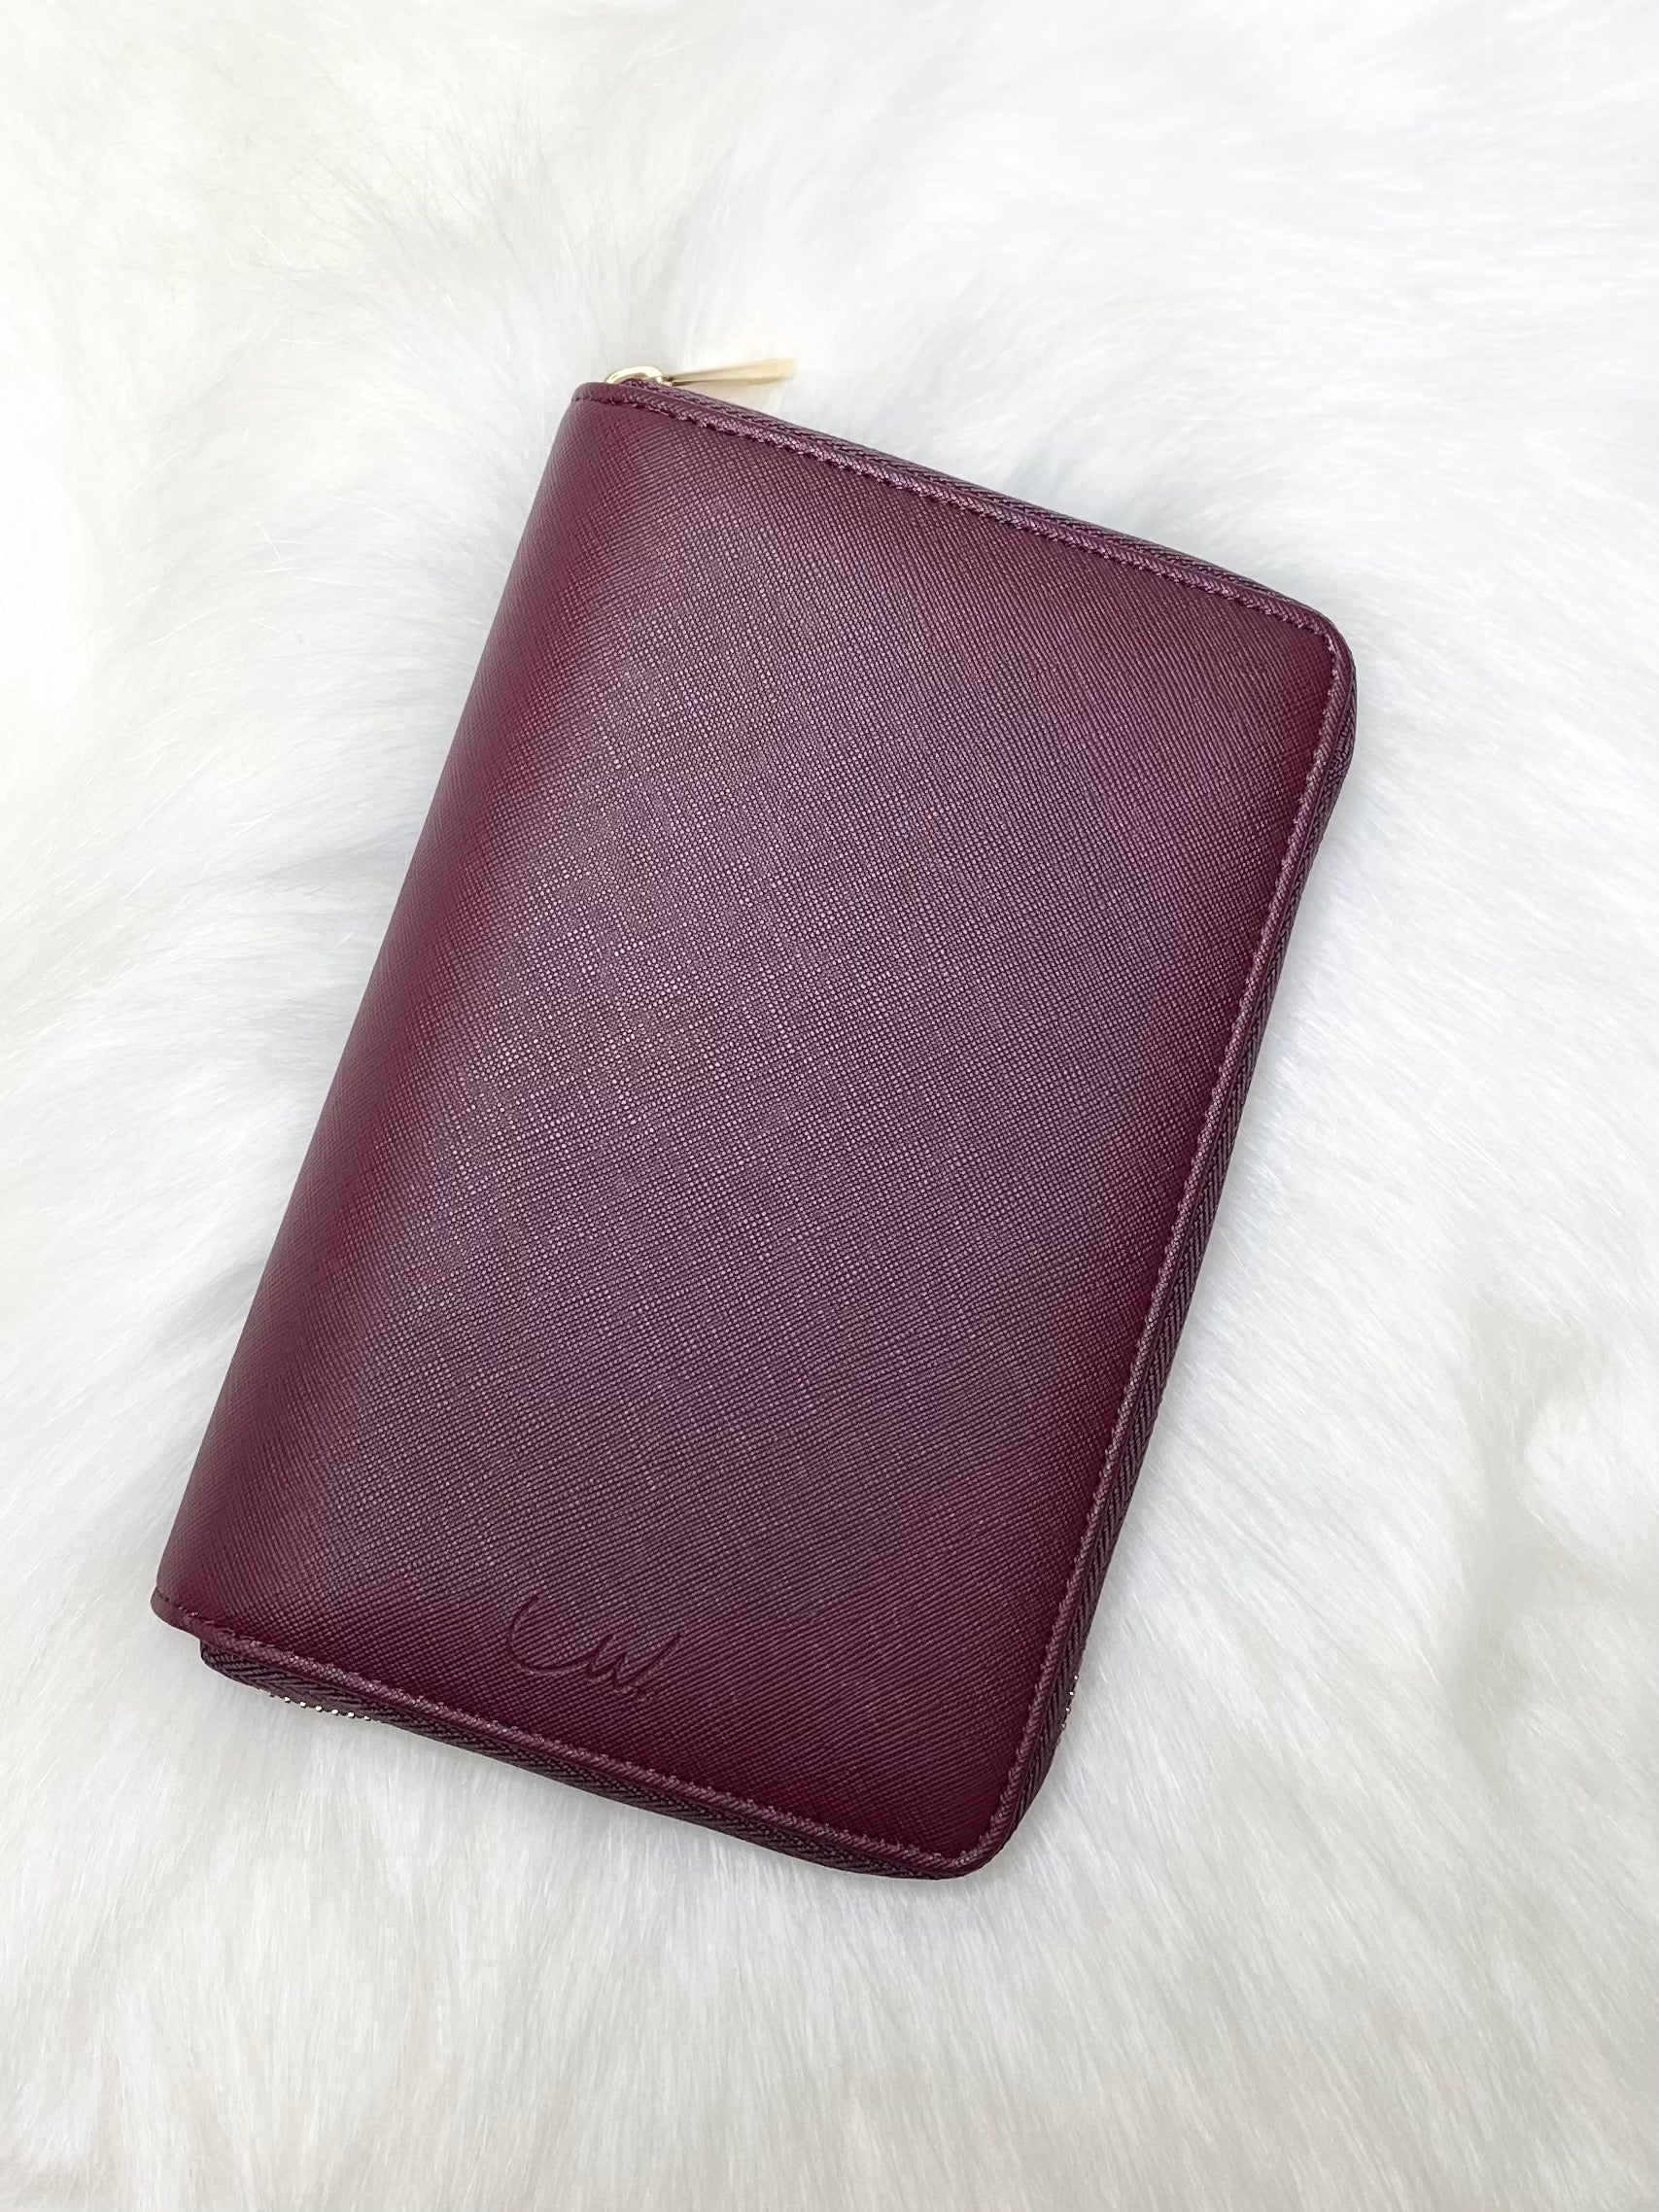 LW + DFP Collab Planner Wallet LIMITED EDITION